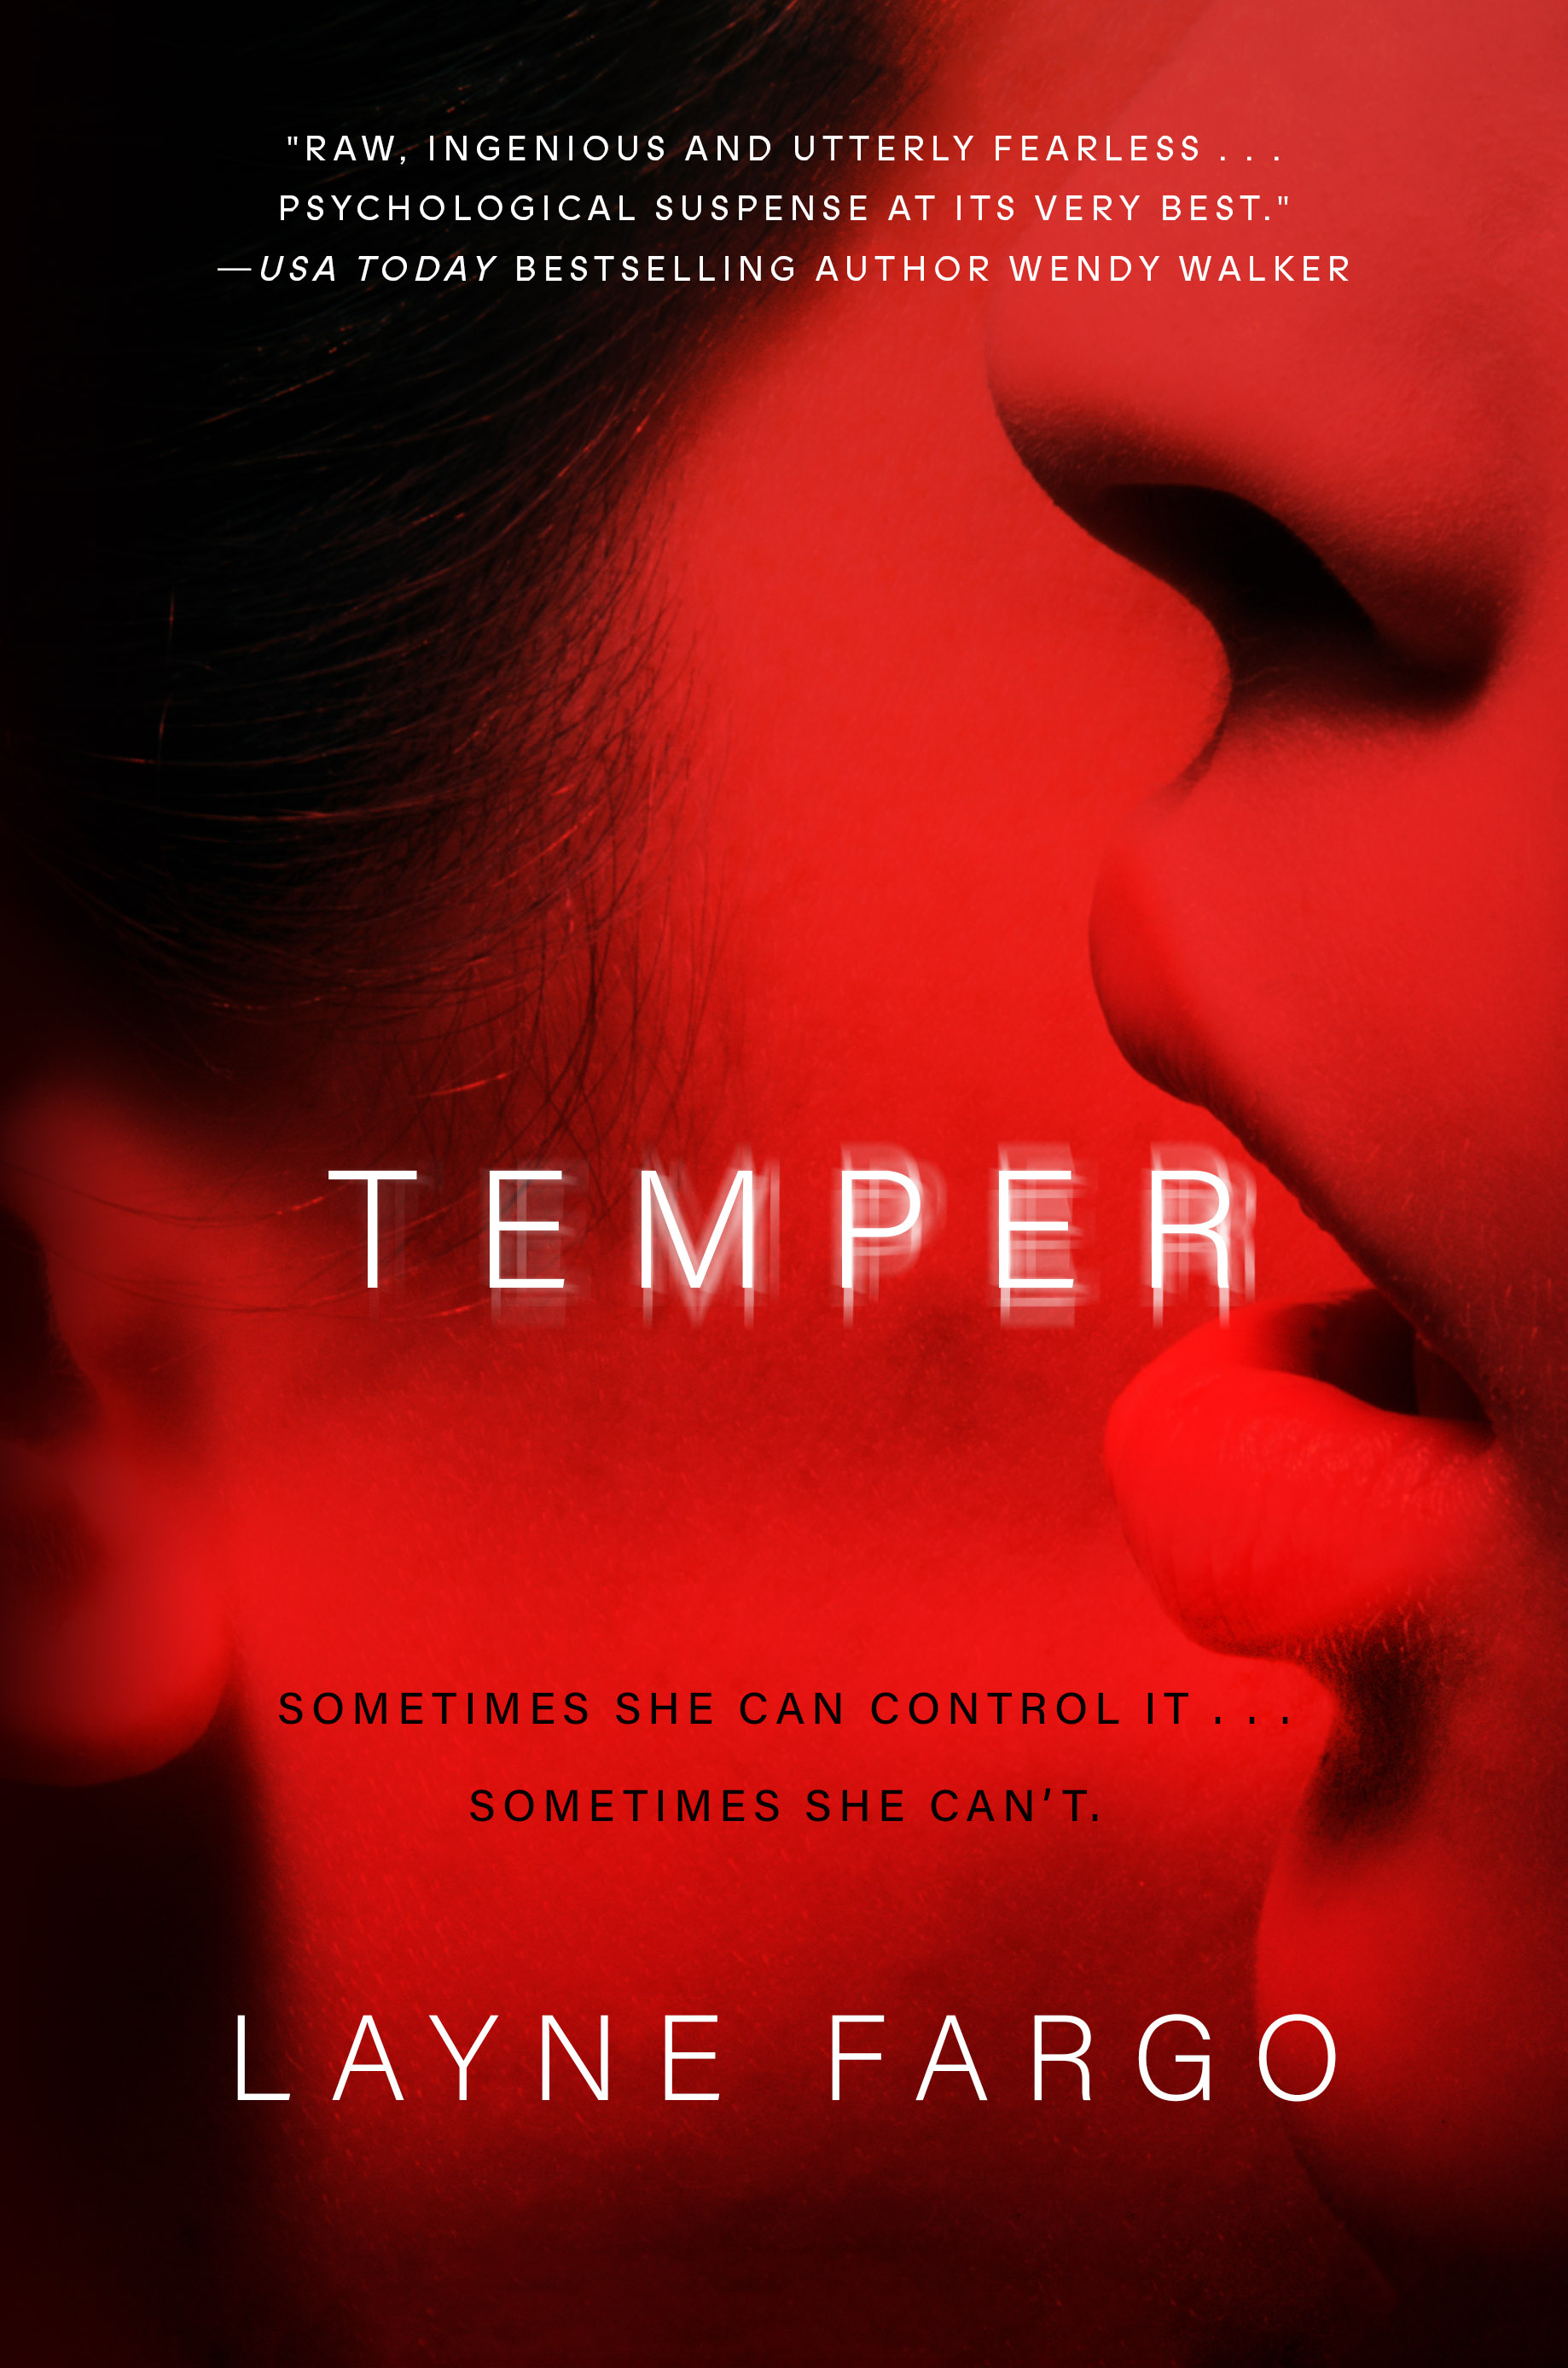 TEMPER - Layne Fargo